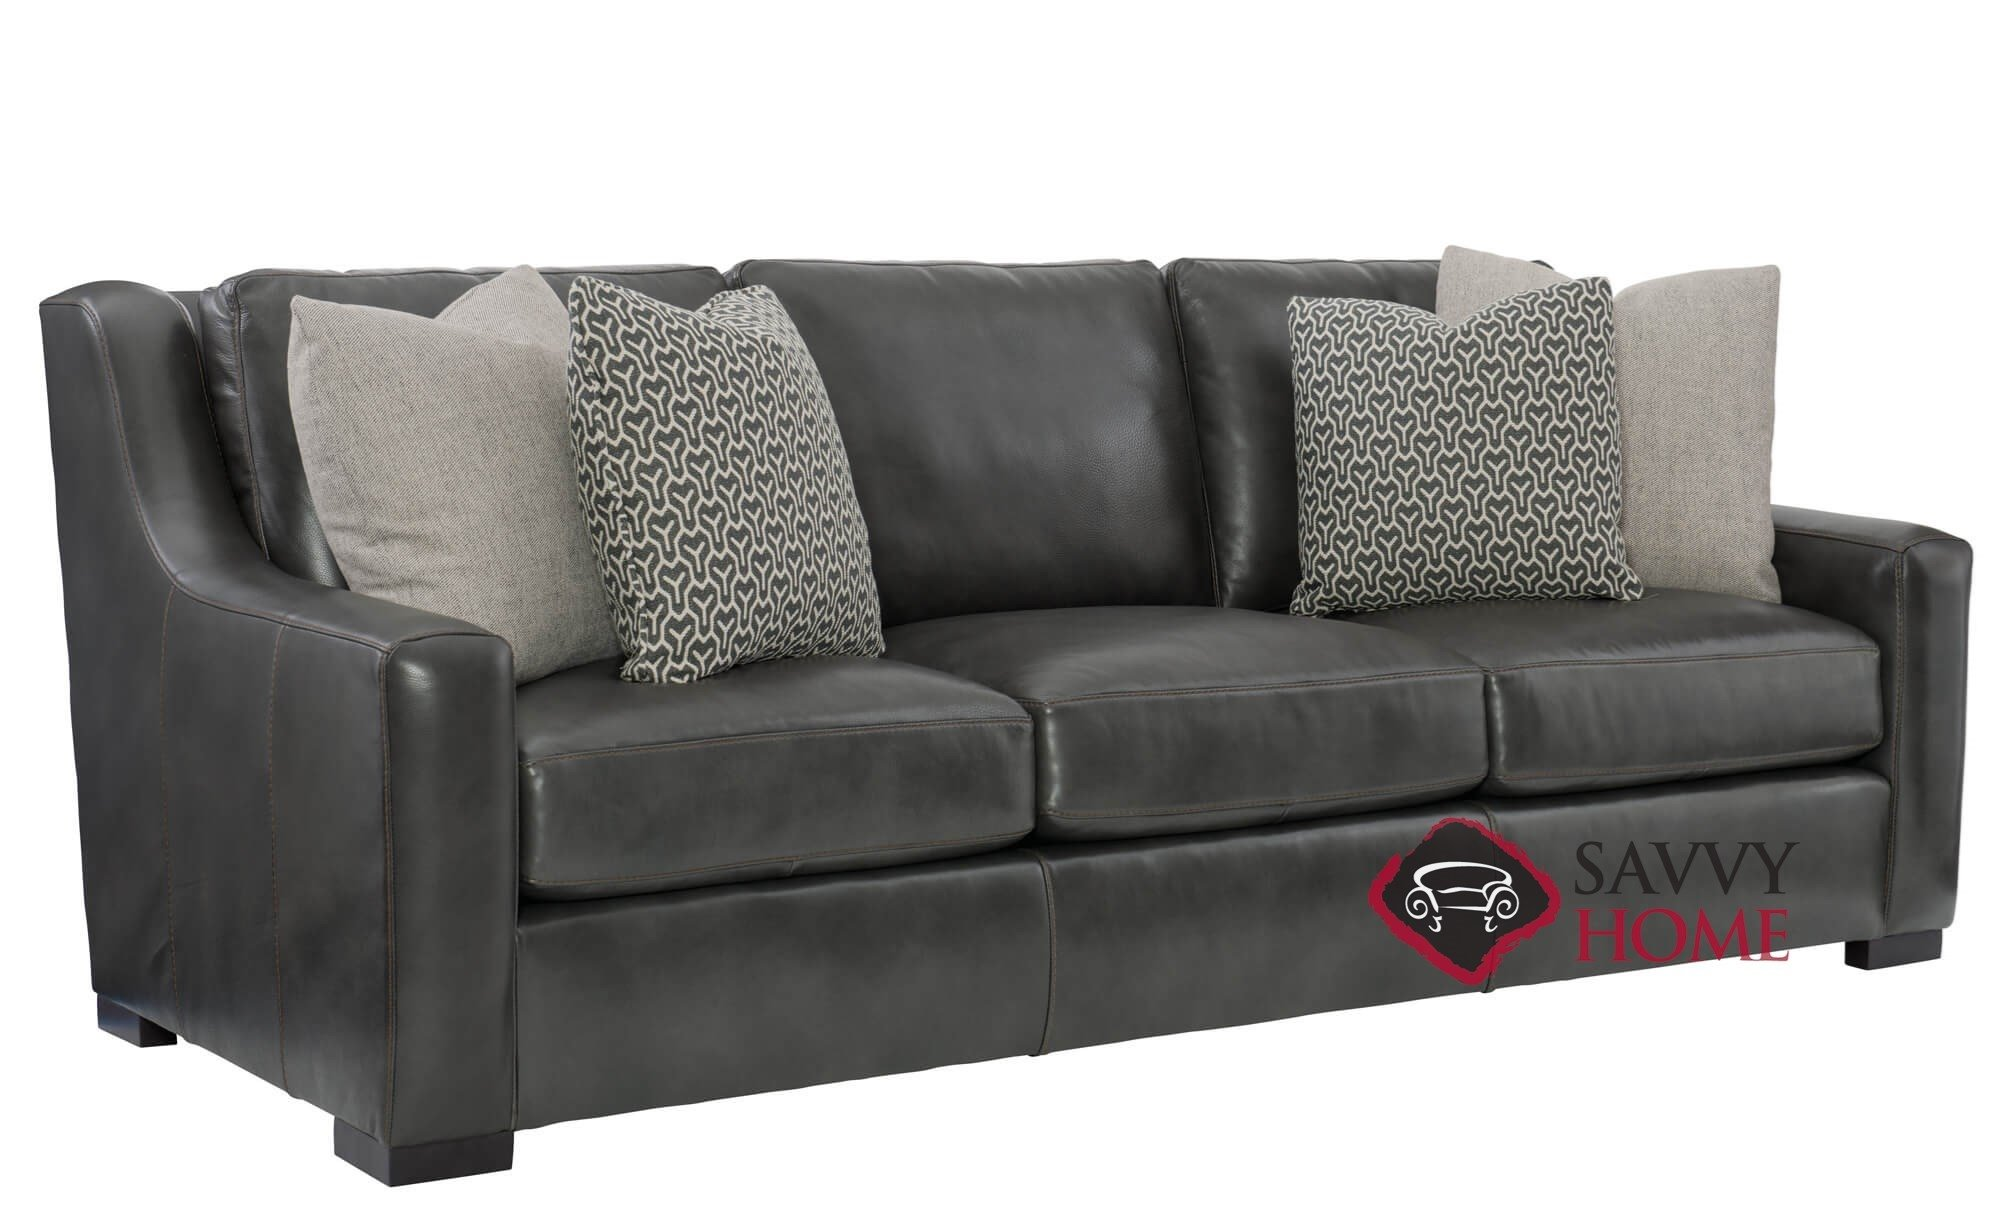 Awe Inspiring Quick Ship Germain By Bernhardt Leather Stationary Sofa In By Bernhardt With Fast Shipping Savvyhomestore Com Pdpeps Interior Chair Design Pdpepsorg